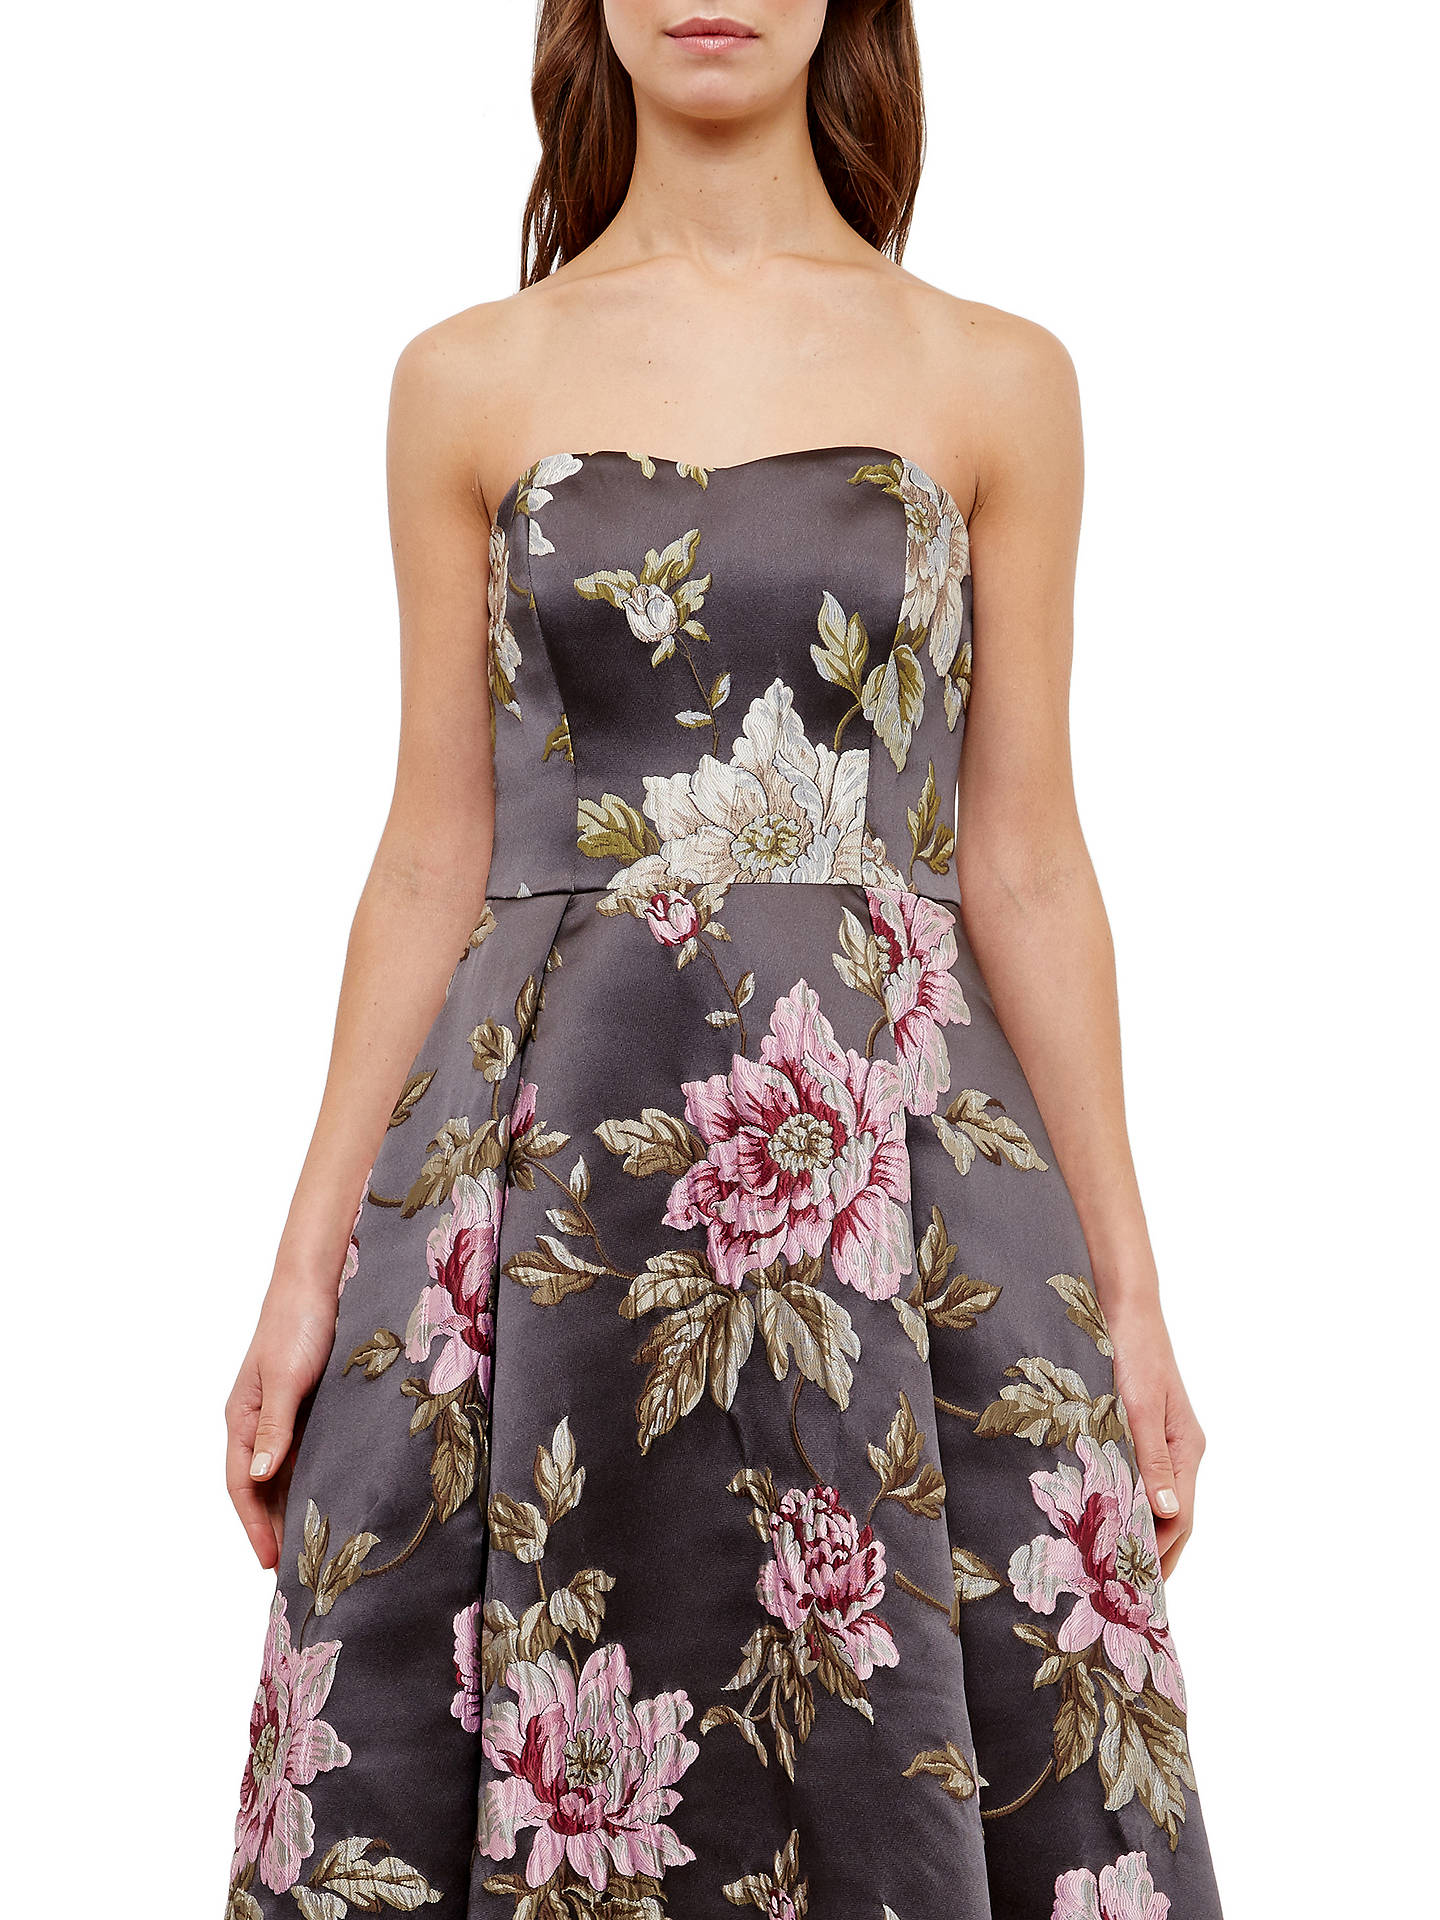 c9fa2fe01 Buy Ted Baker Bernica Floral Jacquard Dress